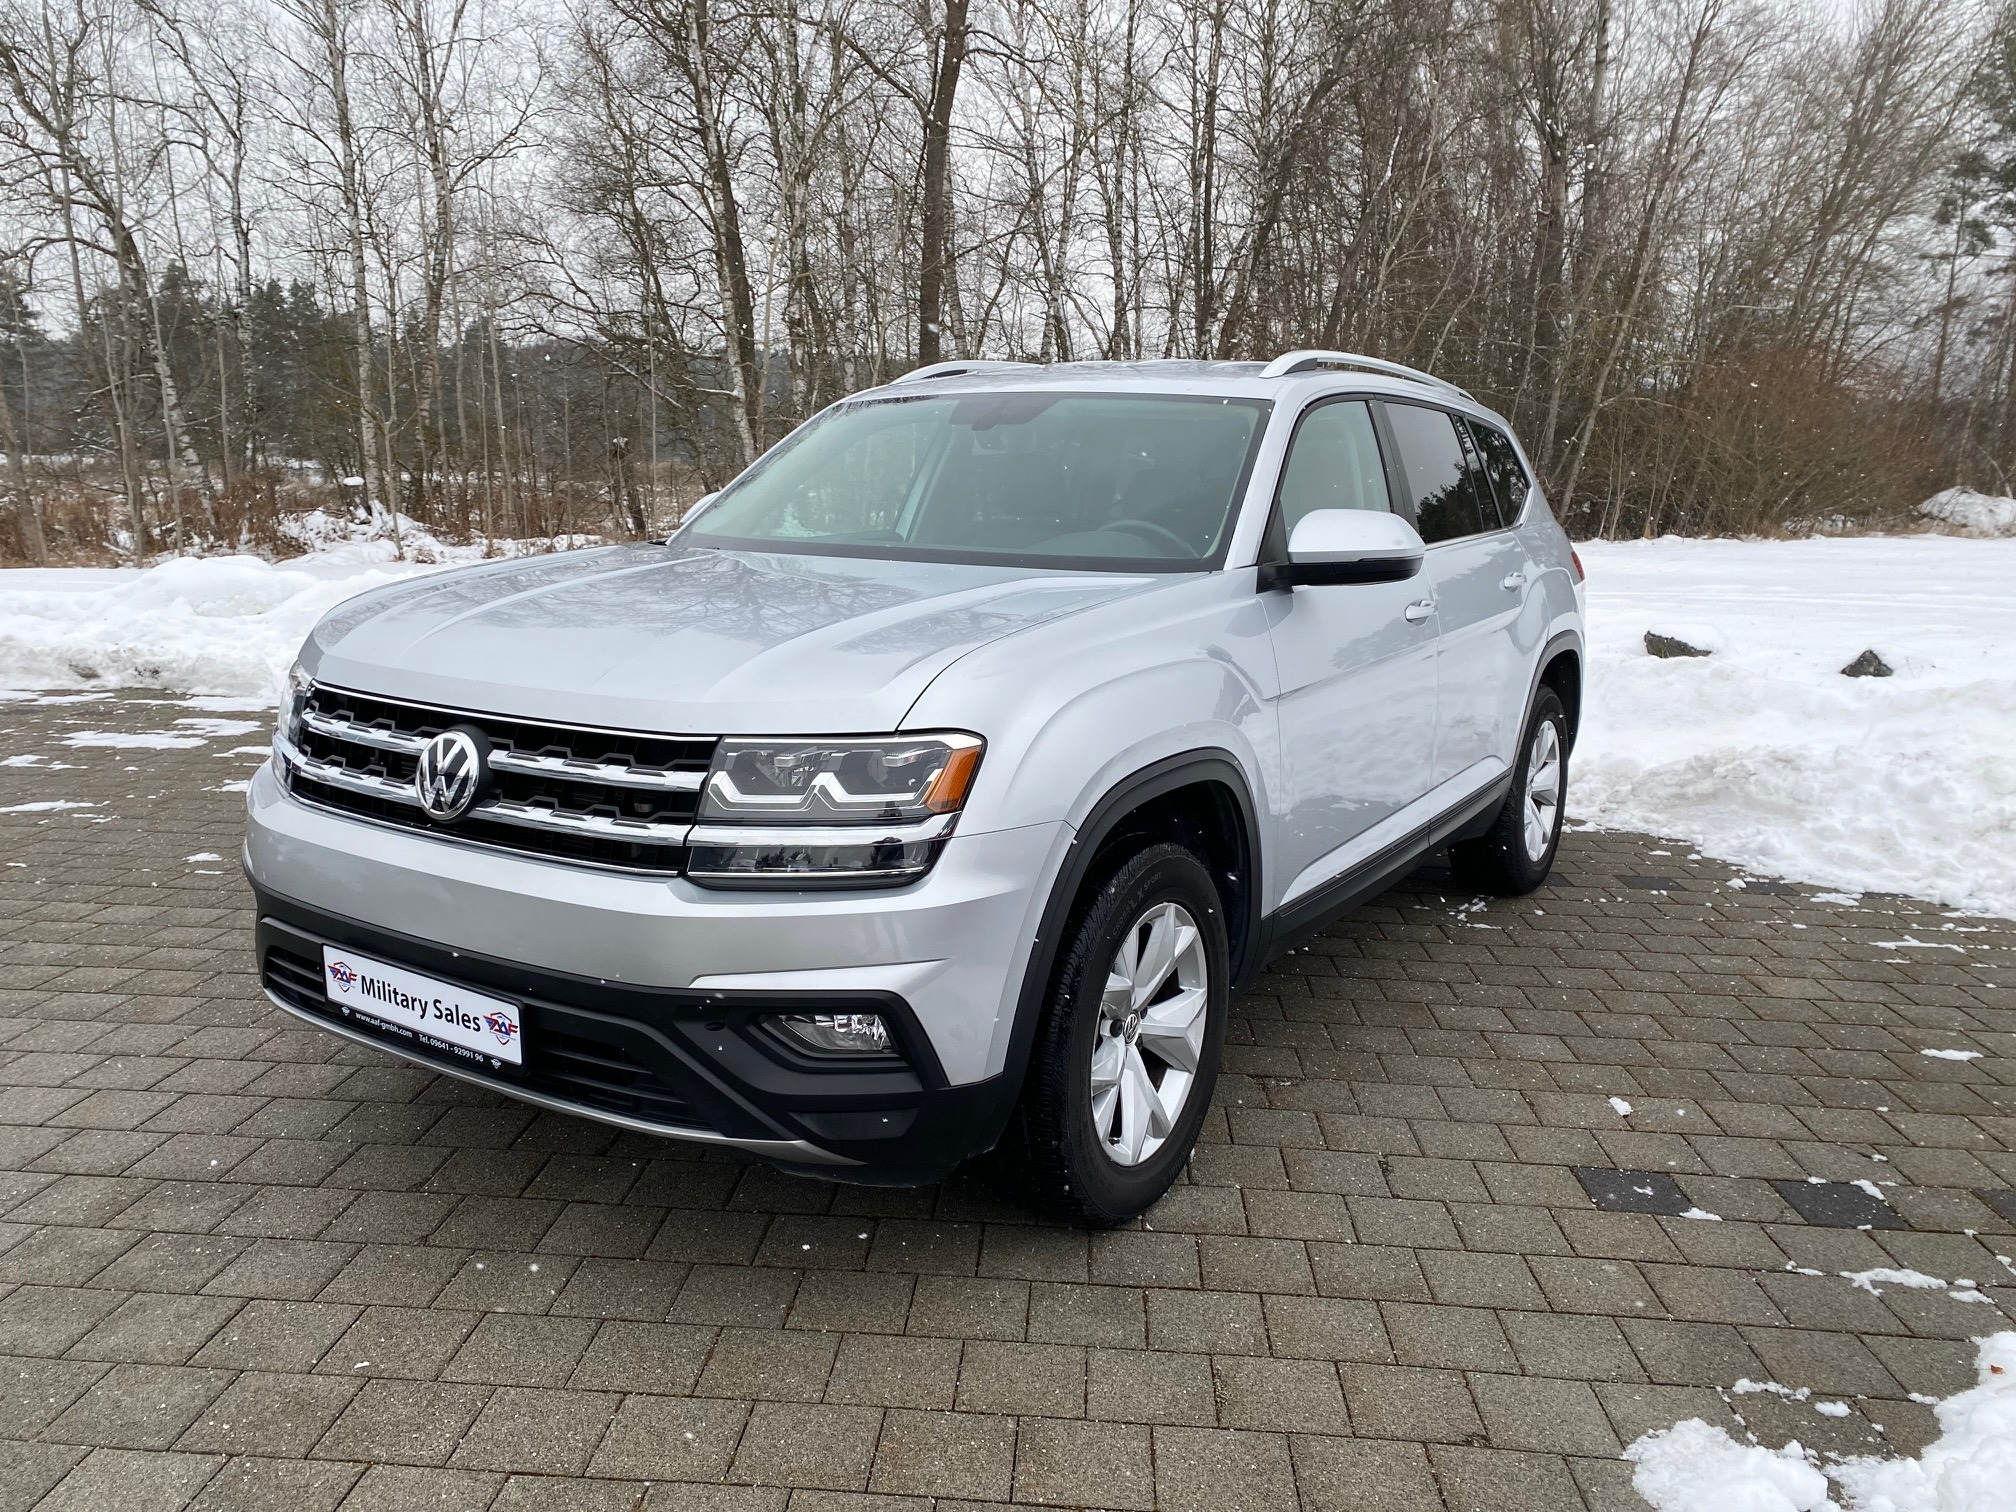 2019 Volkswagen Atlas SE</br>as low as </br>$249 per paycheck